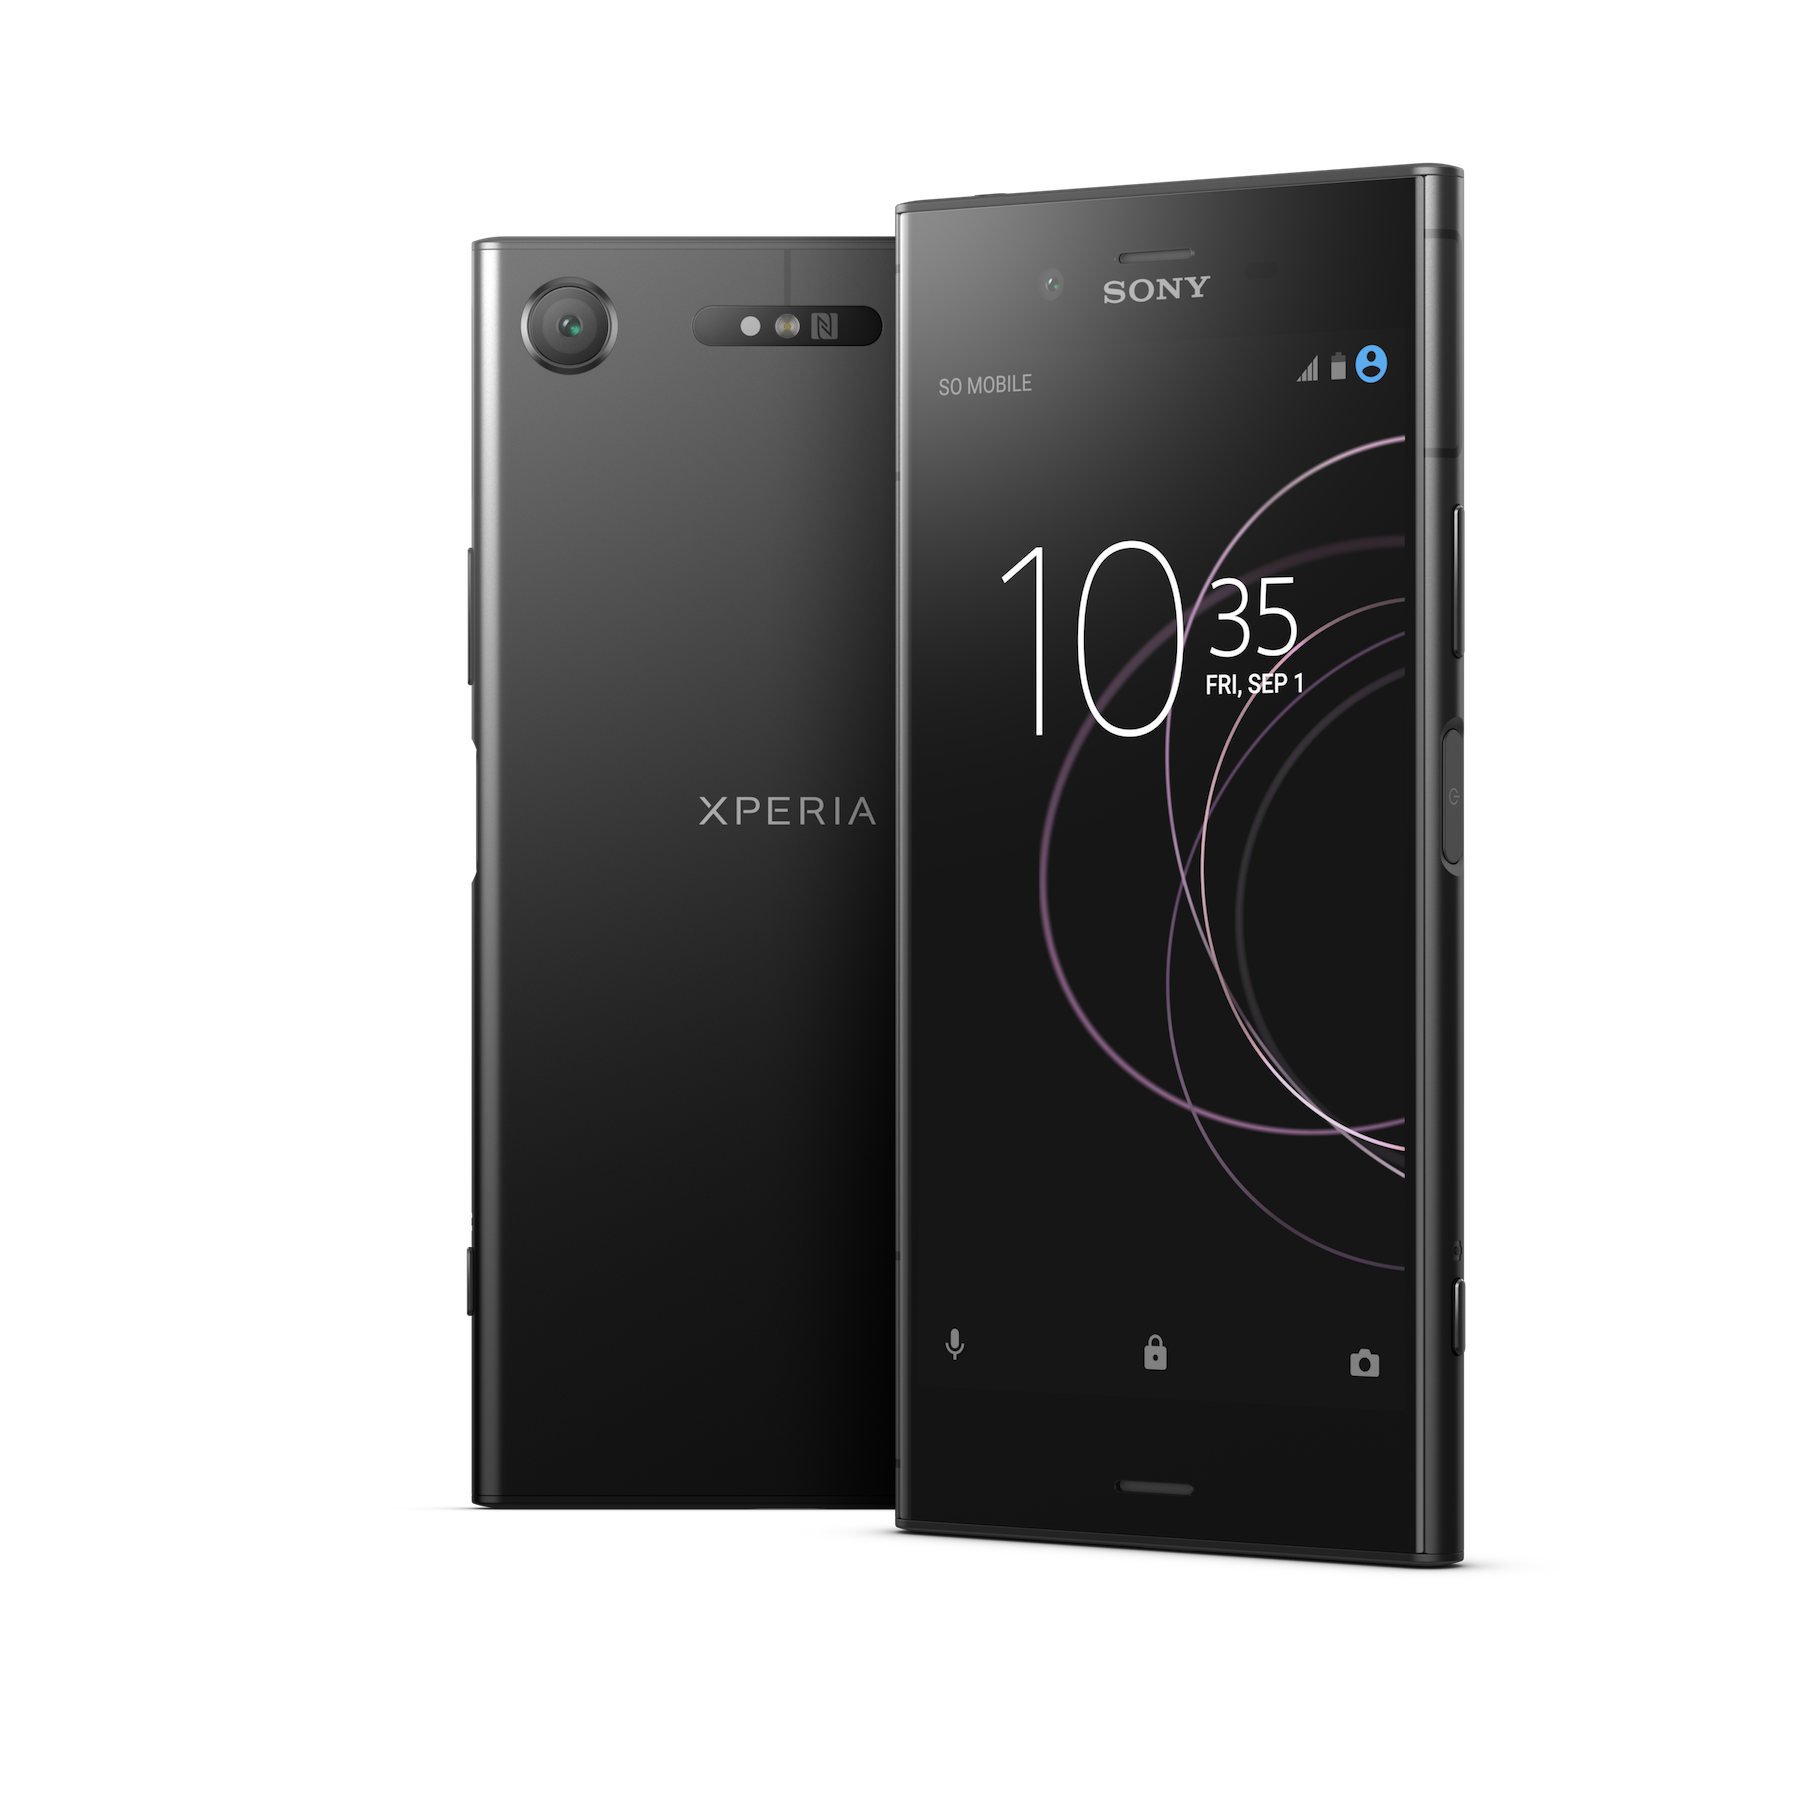 The new Sony Xperia XZ1